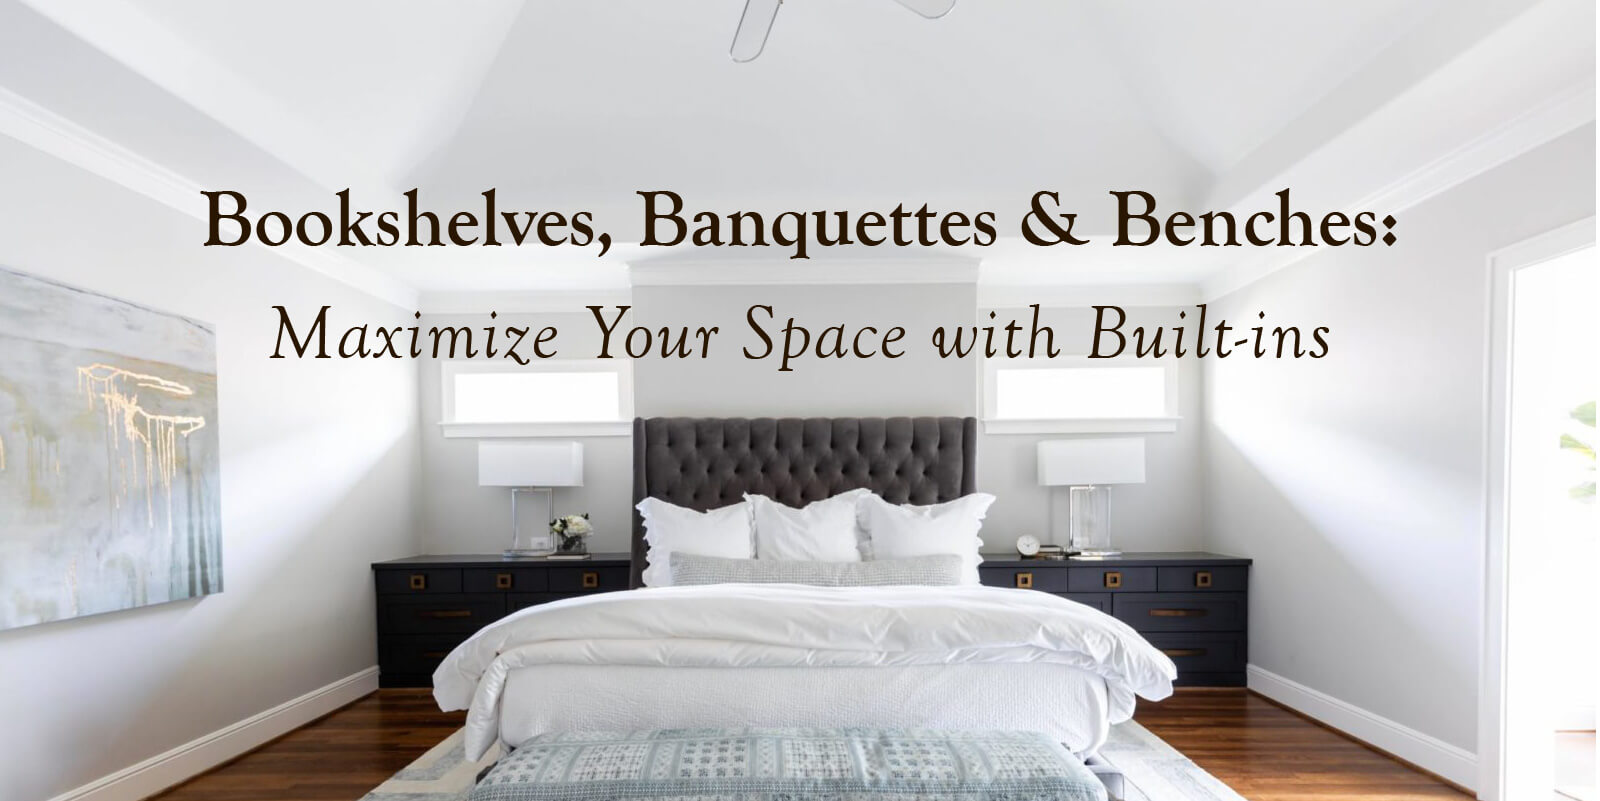 Bookshelves, Banquettes & Benches: Maximize Your Space with Built-ins